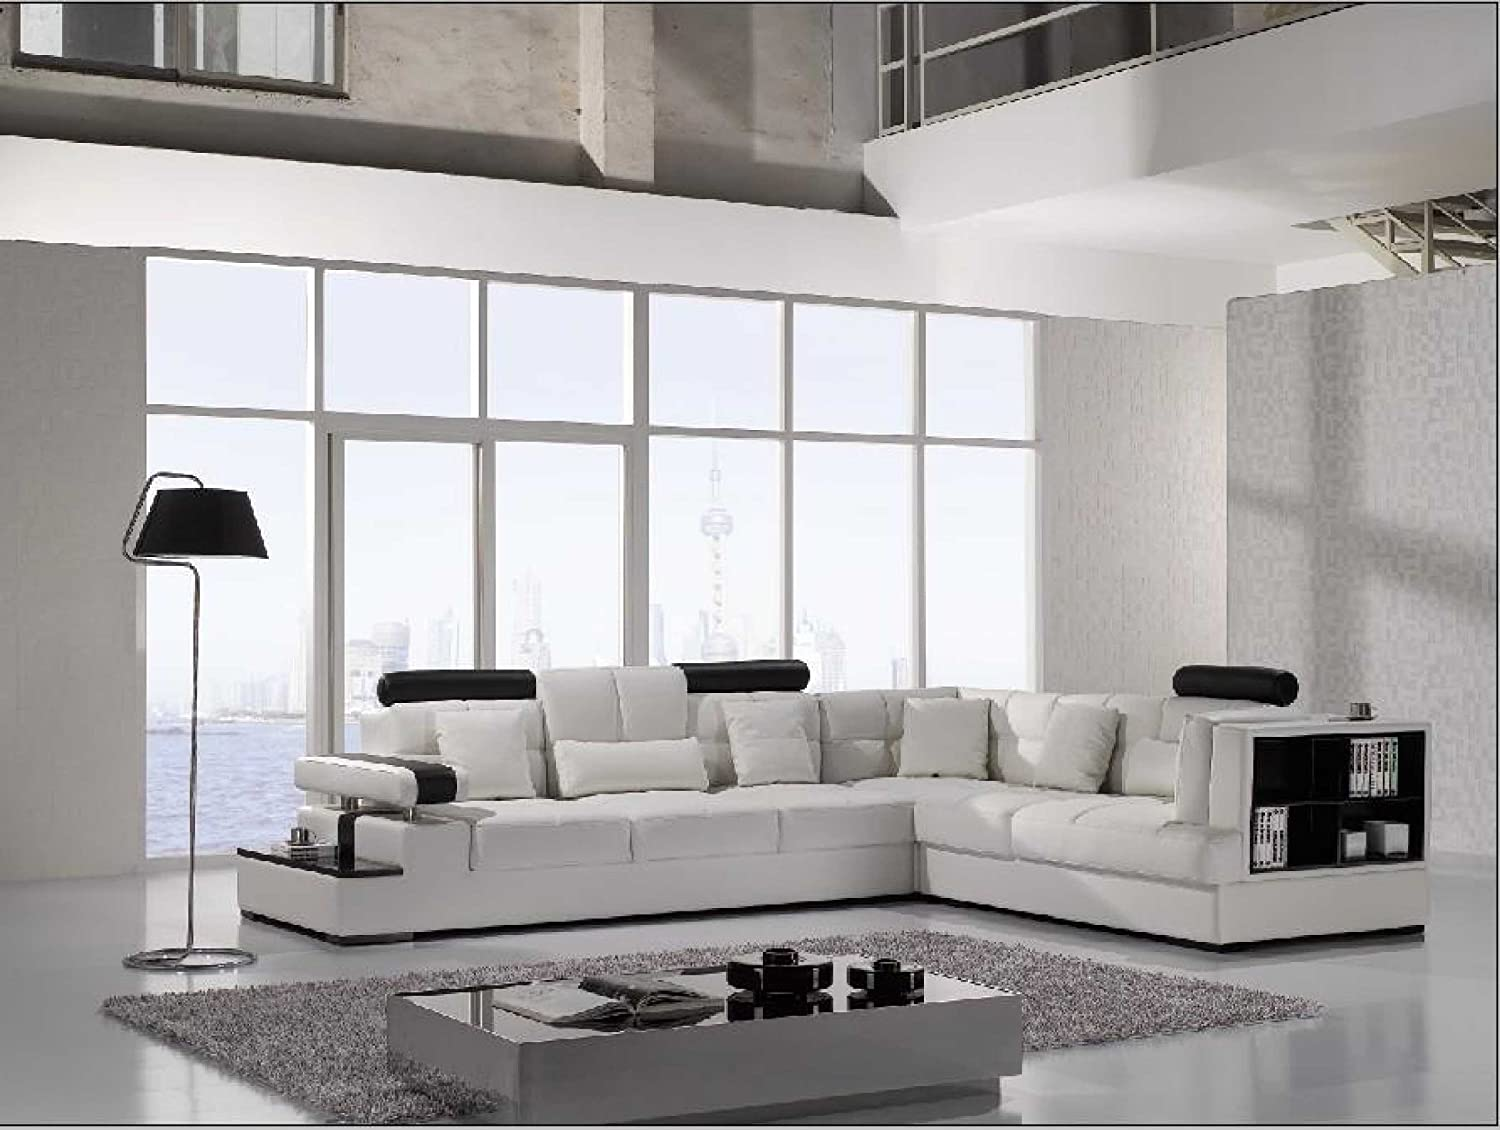 Merveilleux Amazon.com: Vig Furniture T117 Modern White Leather Sectional Sofa: Kitchen  U0026 Dining